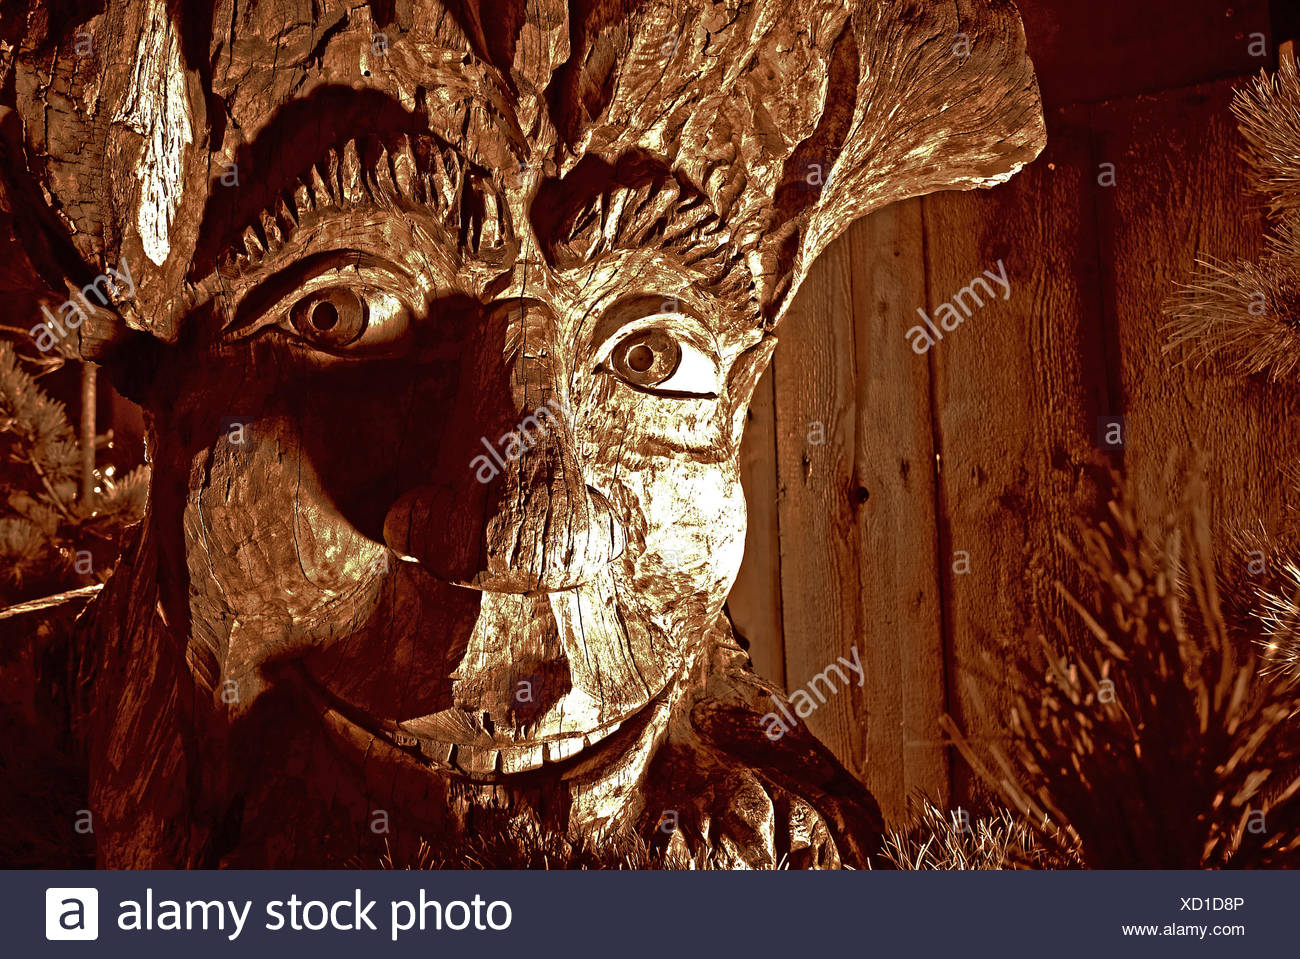 art wood giant ghost monster mysterious dwarf scandinavia carved troll Stock Photo